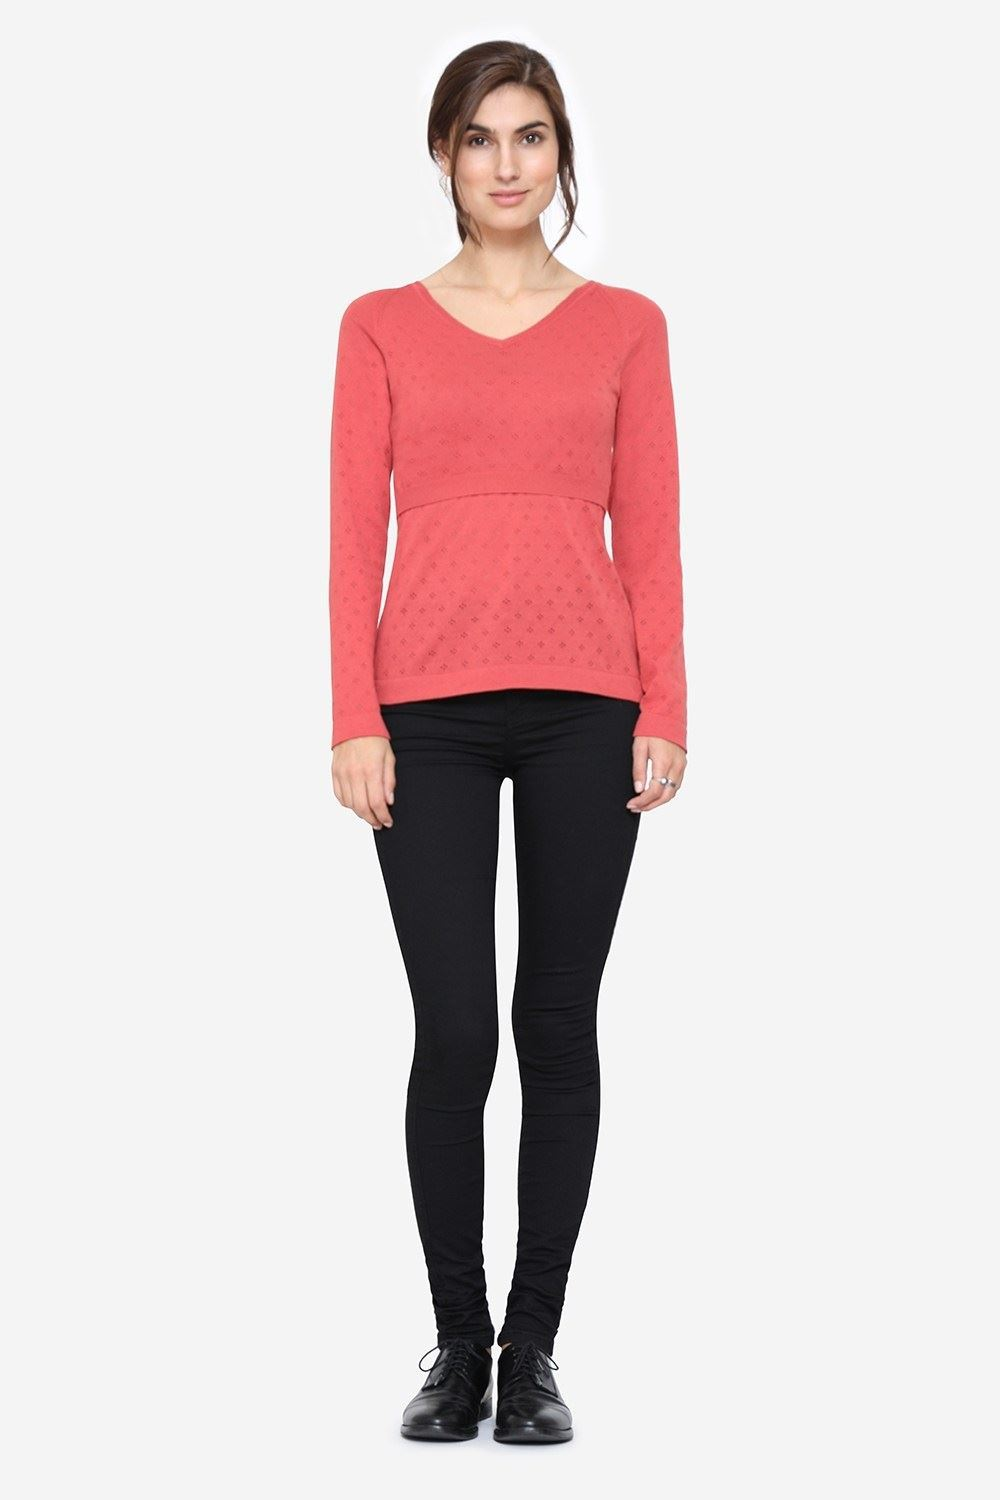 Coral coloured Nursing Pullover with V-neck, full figur